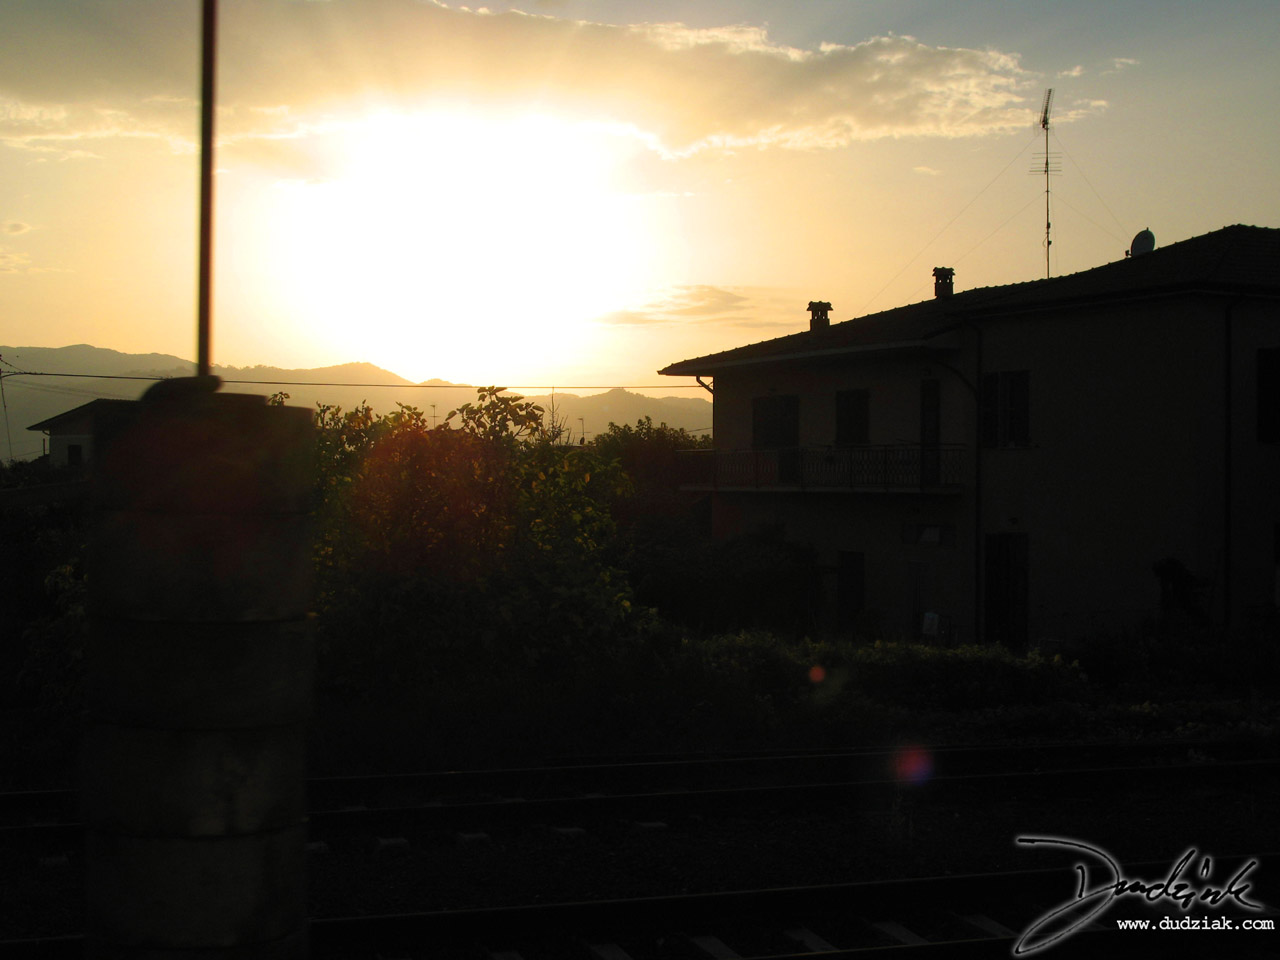 Pisa Italy,  milan Italy,  train,  sunset,  italian train